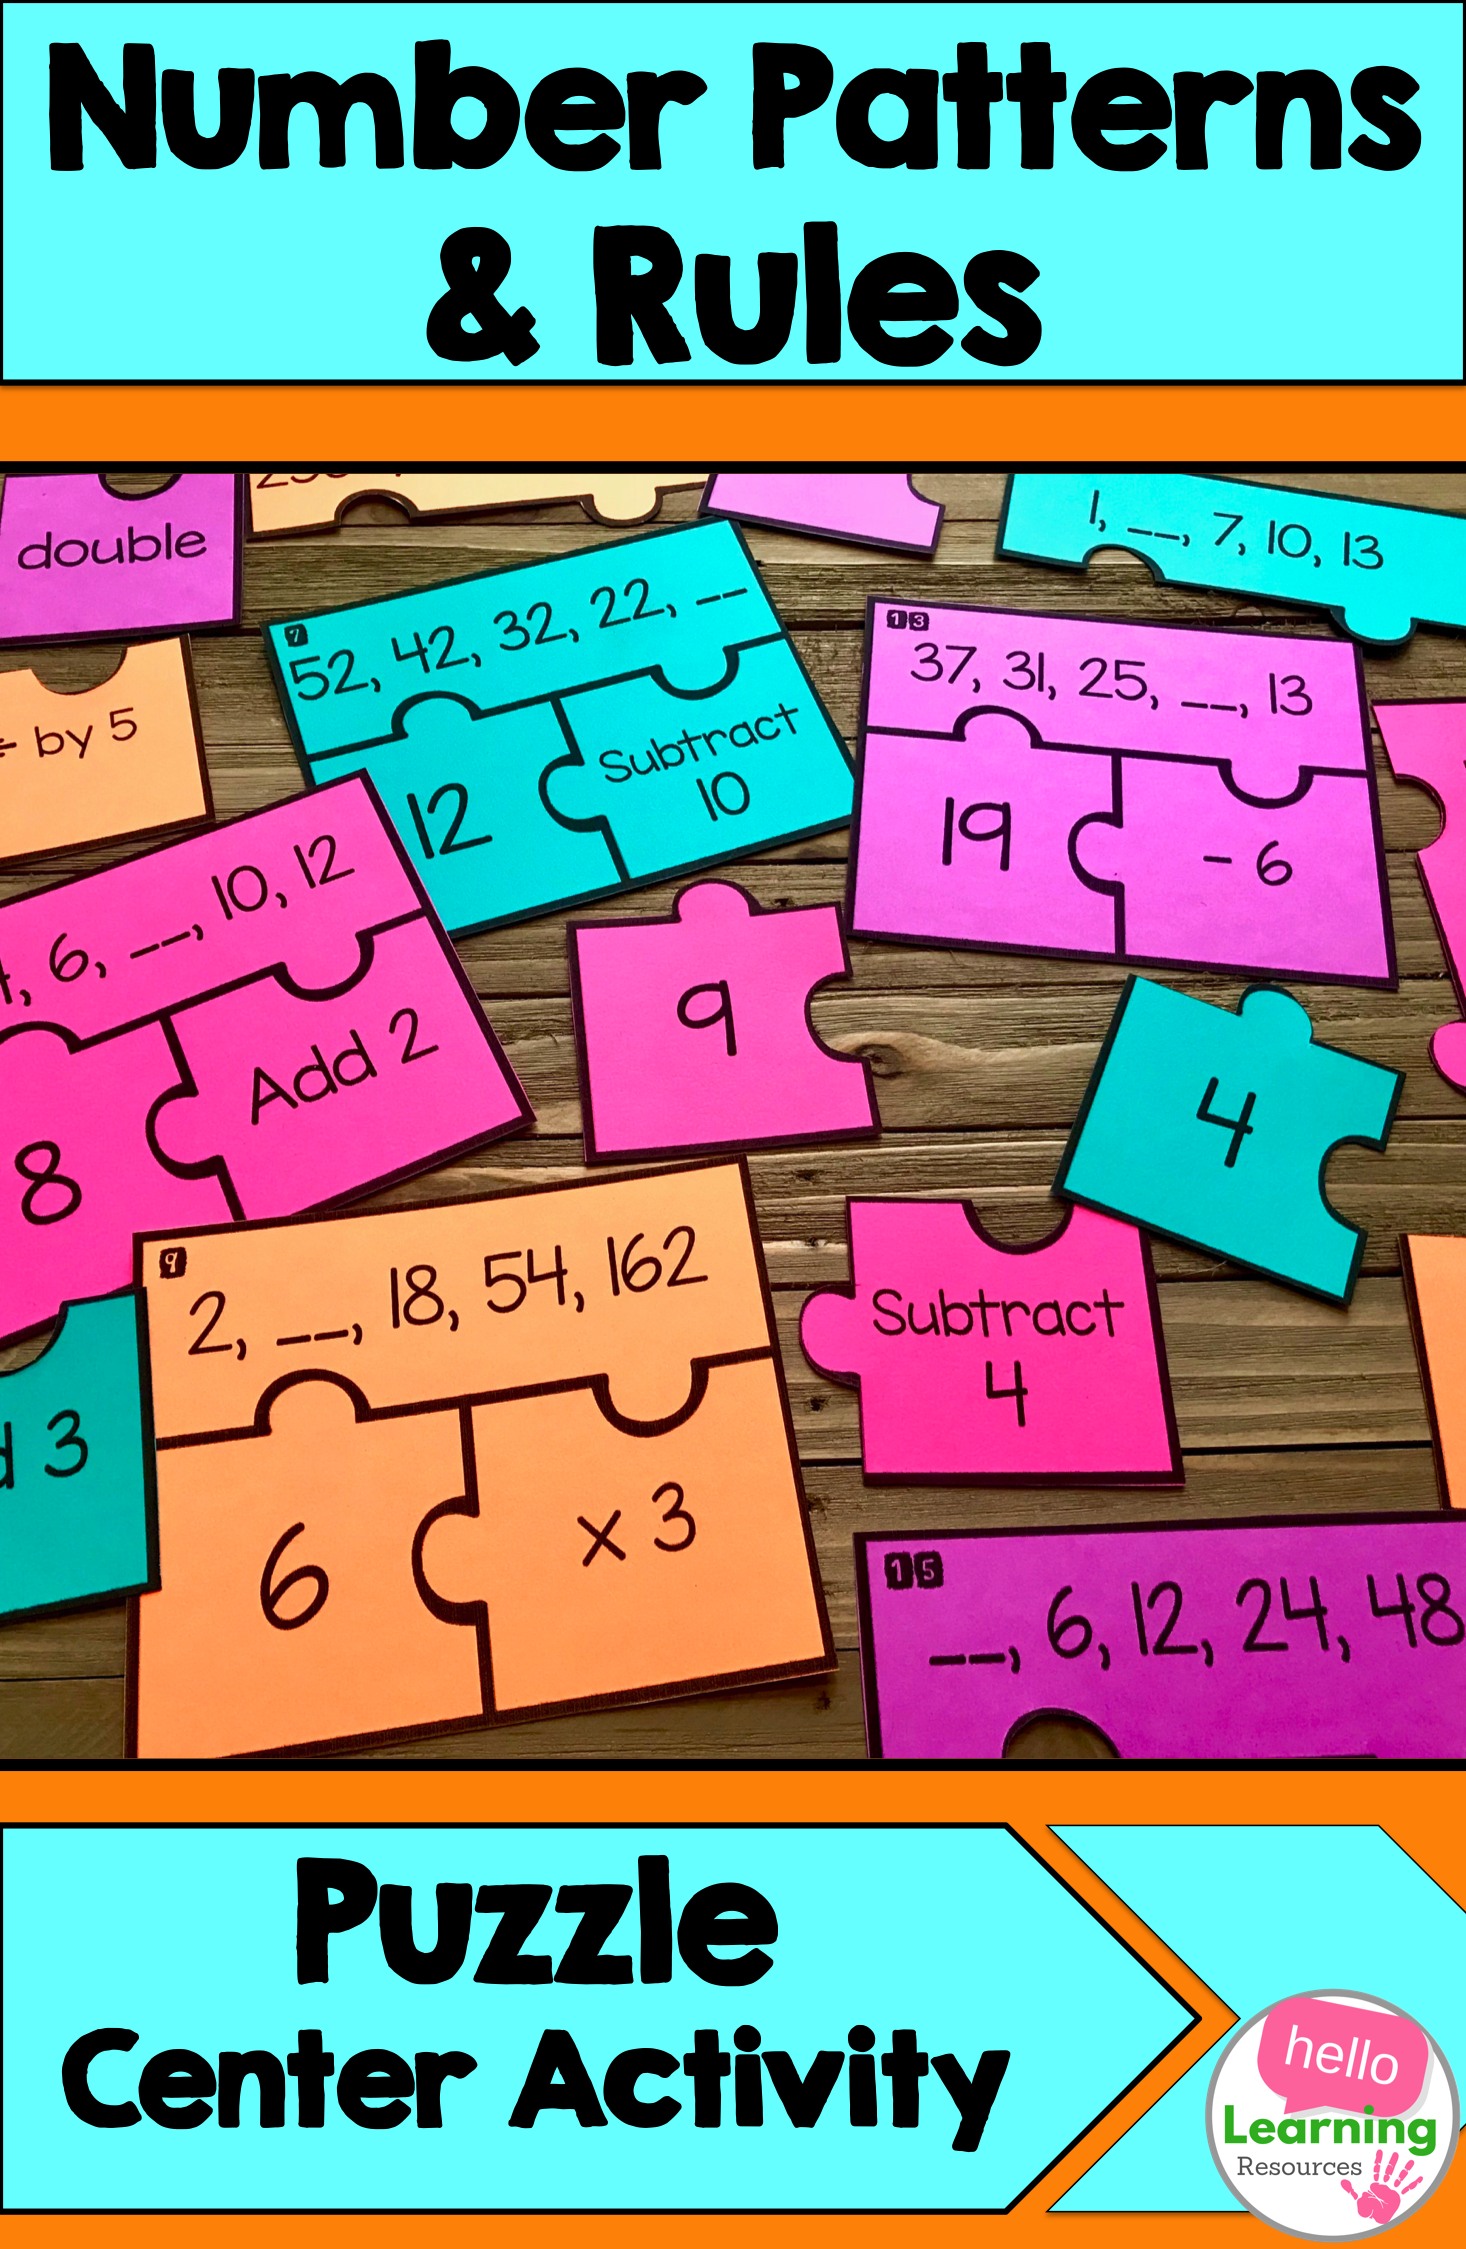 Number Patterns and Rules Puzzle   Math patterns activities [ 2249 x 1466 Pixel ]